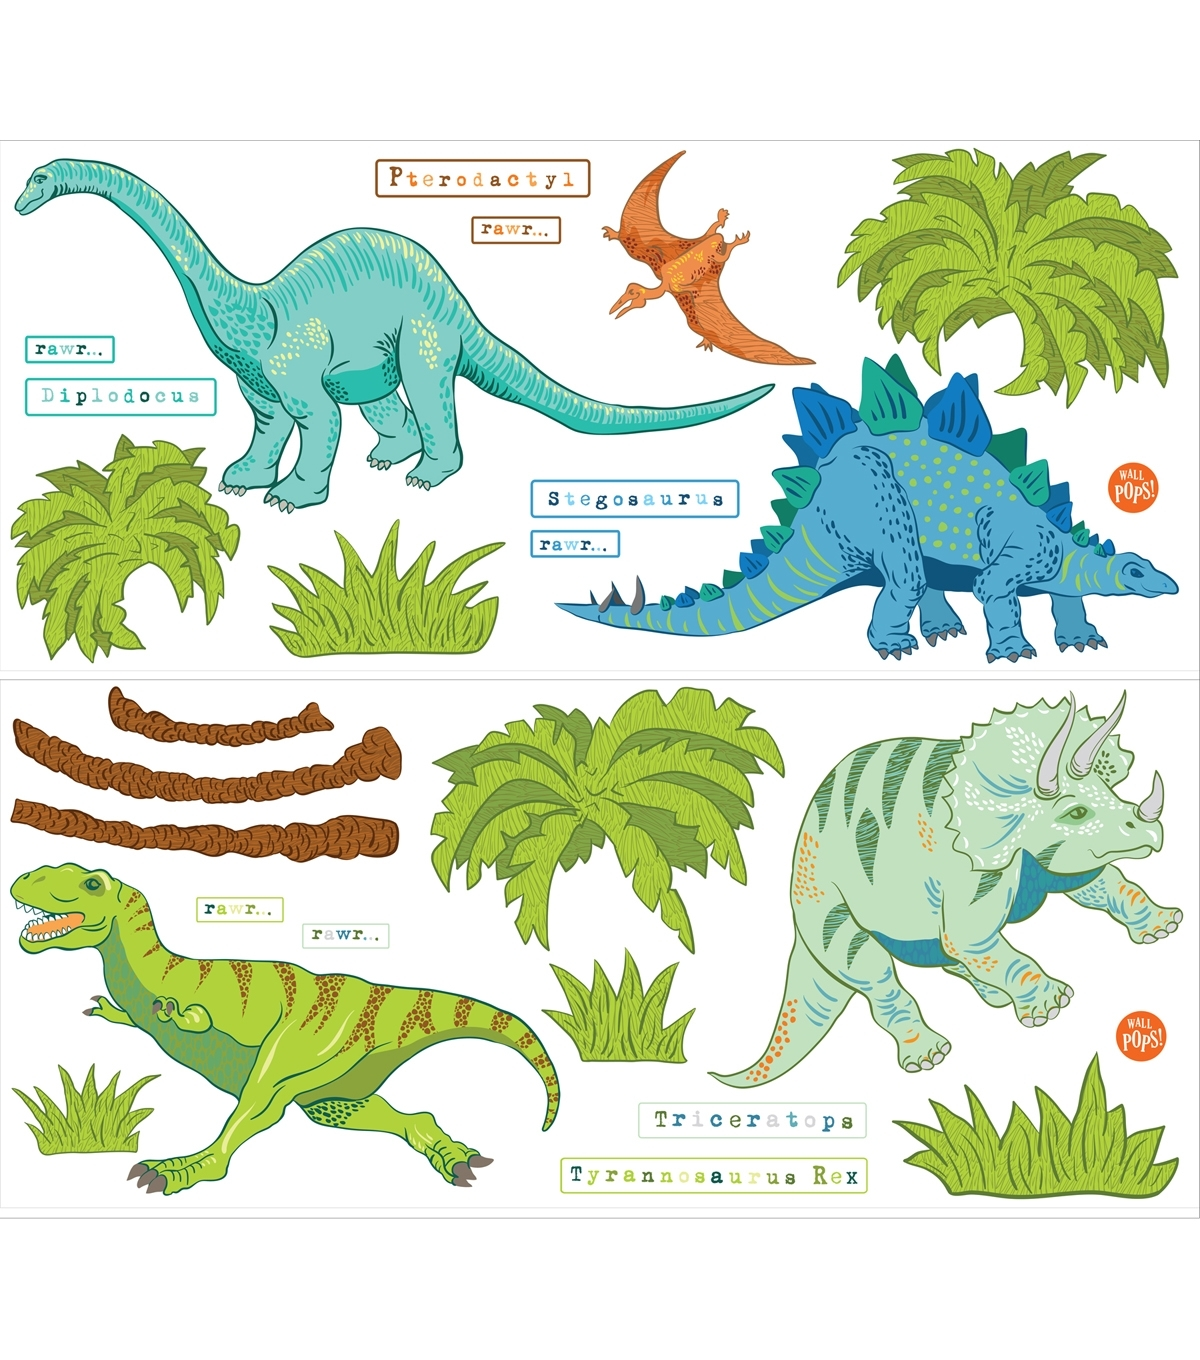 Wall Pops Dinosaur Expedition Wall Art Decal Kit, 42 Piece Set | Joann Throughout Most Popular Dinosaur Wall Art (View 19 of 20)